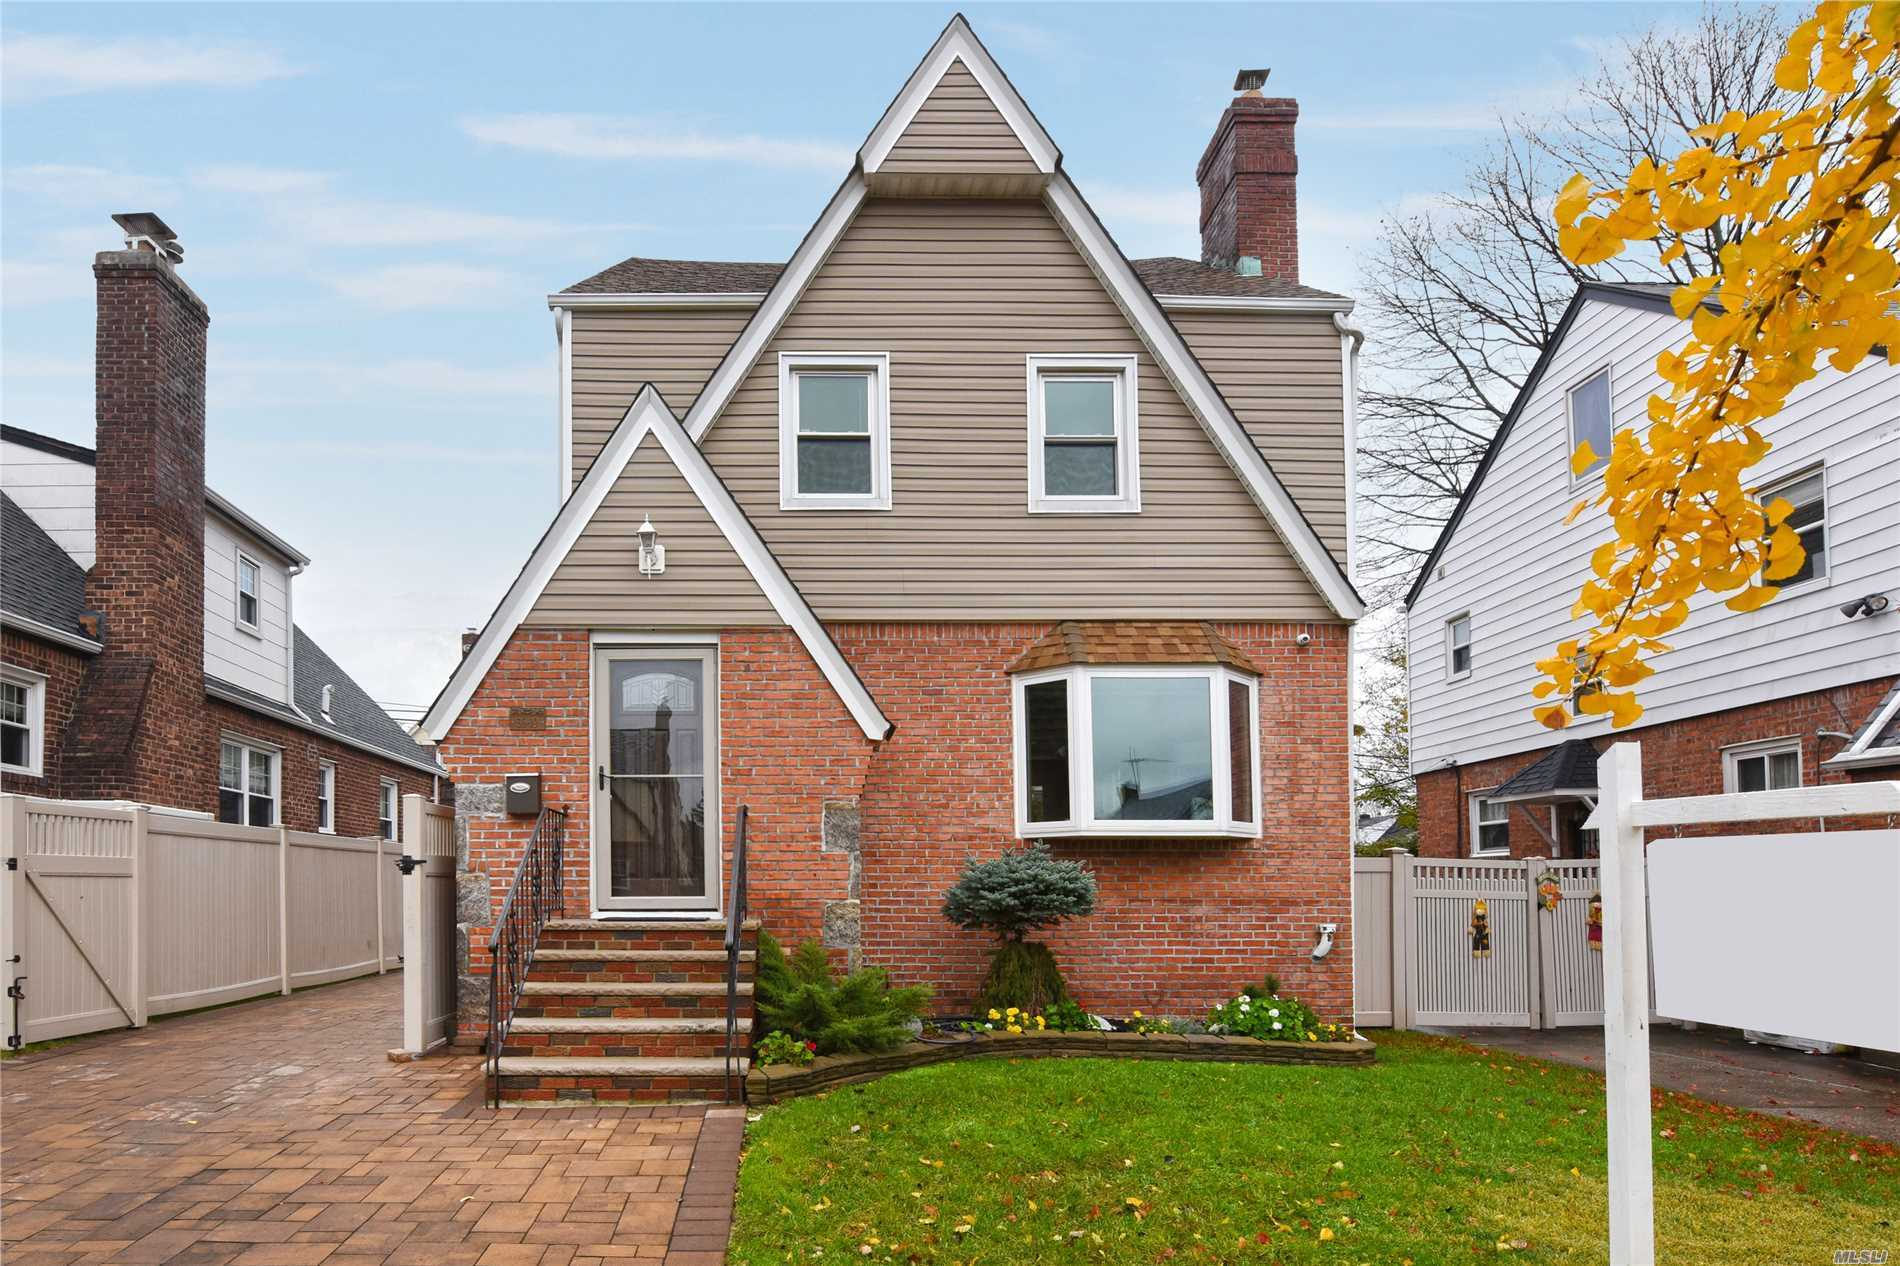 Just Arrived- Fabulous Detached Oversized Colonial Located On A Wonderful Block In Beautiful Bayside. Recently Renovated Kitchen And Bathrooms- With Many, Many Extras Throughout Including New Windows, Upgraded Electric, Alarm System With Cameras, Sprinkler System, Brand New Inground Salt Water Swimming Pool, Pavers In D'way And Yard, Too Much To List- Must See To Appreciate. Convenient To Lirr, Buses, Shopping, Houses Of Worship, Etc. Sd 26 - I.S. 25, P.S. 159, Bayside H.S.